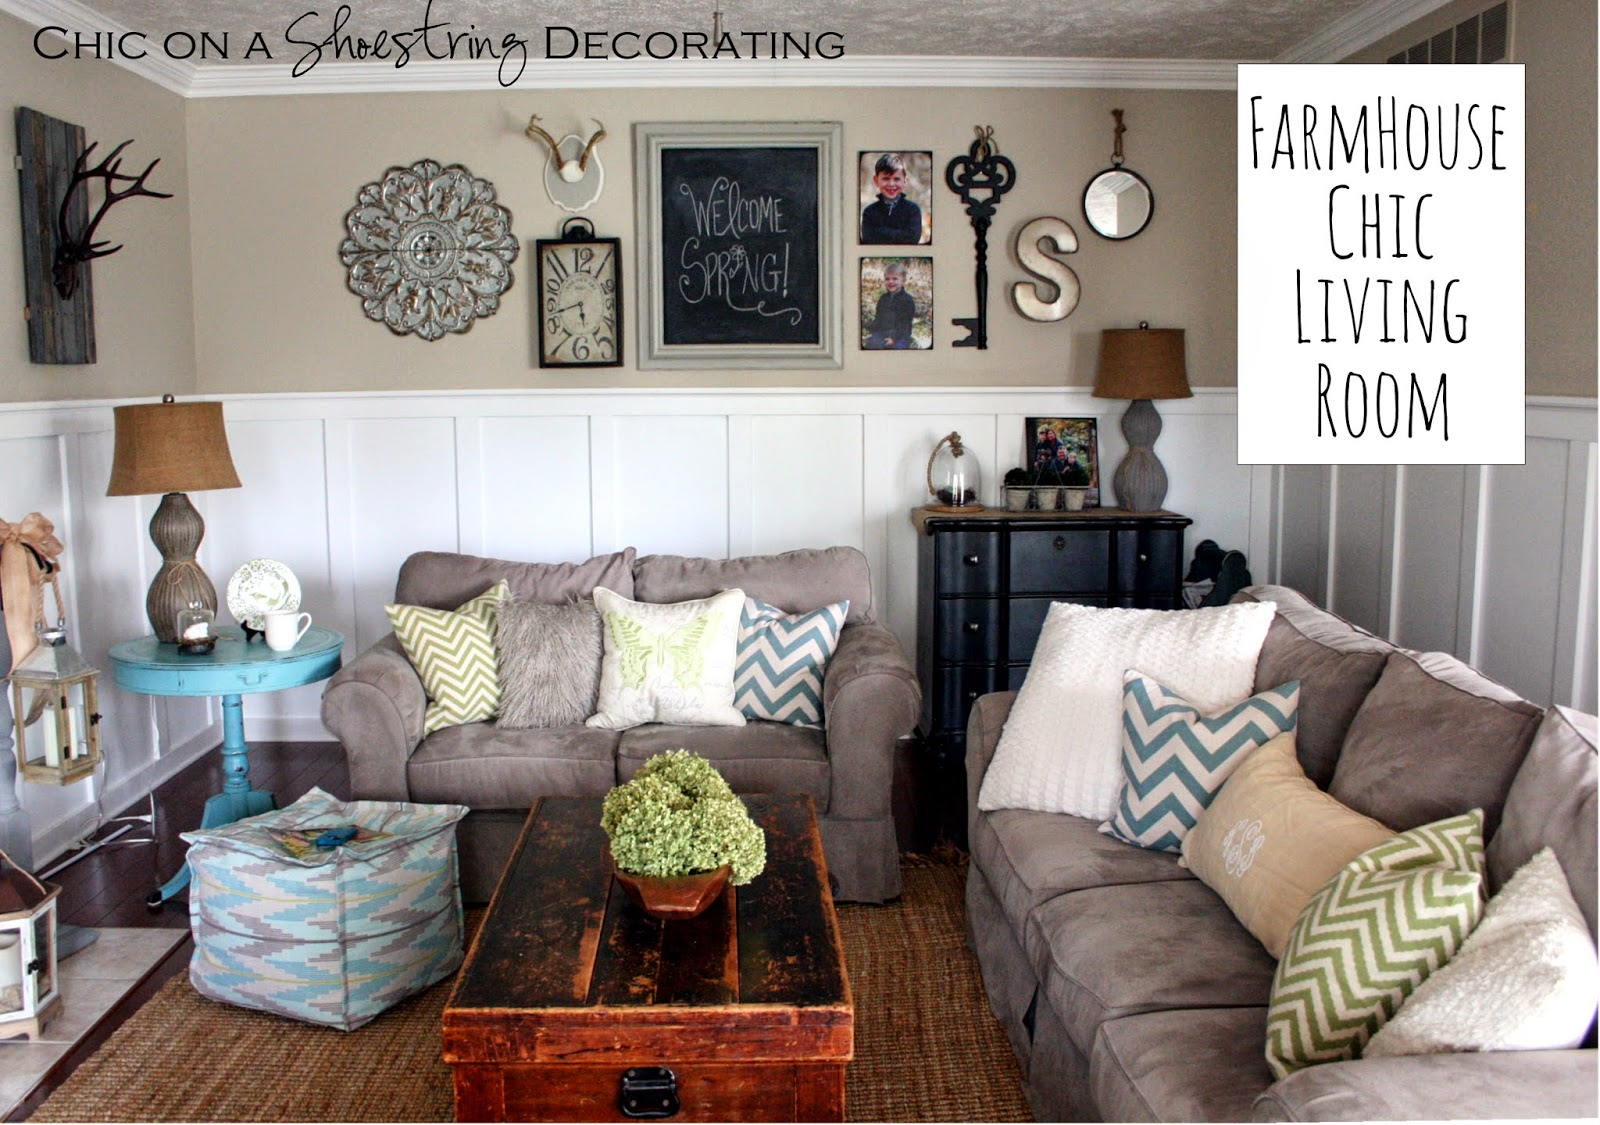 Chic on a shoestring decorating my farmhouse chic living for Chic living room ideas